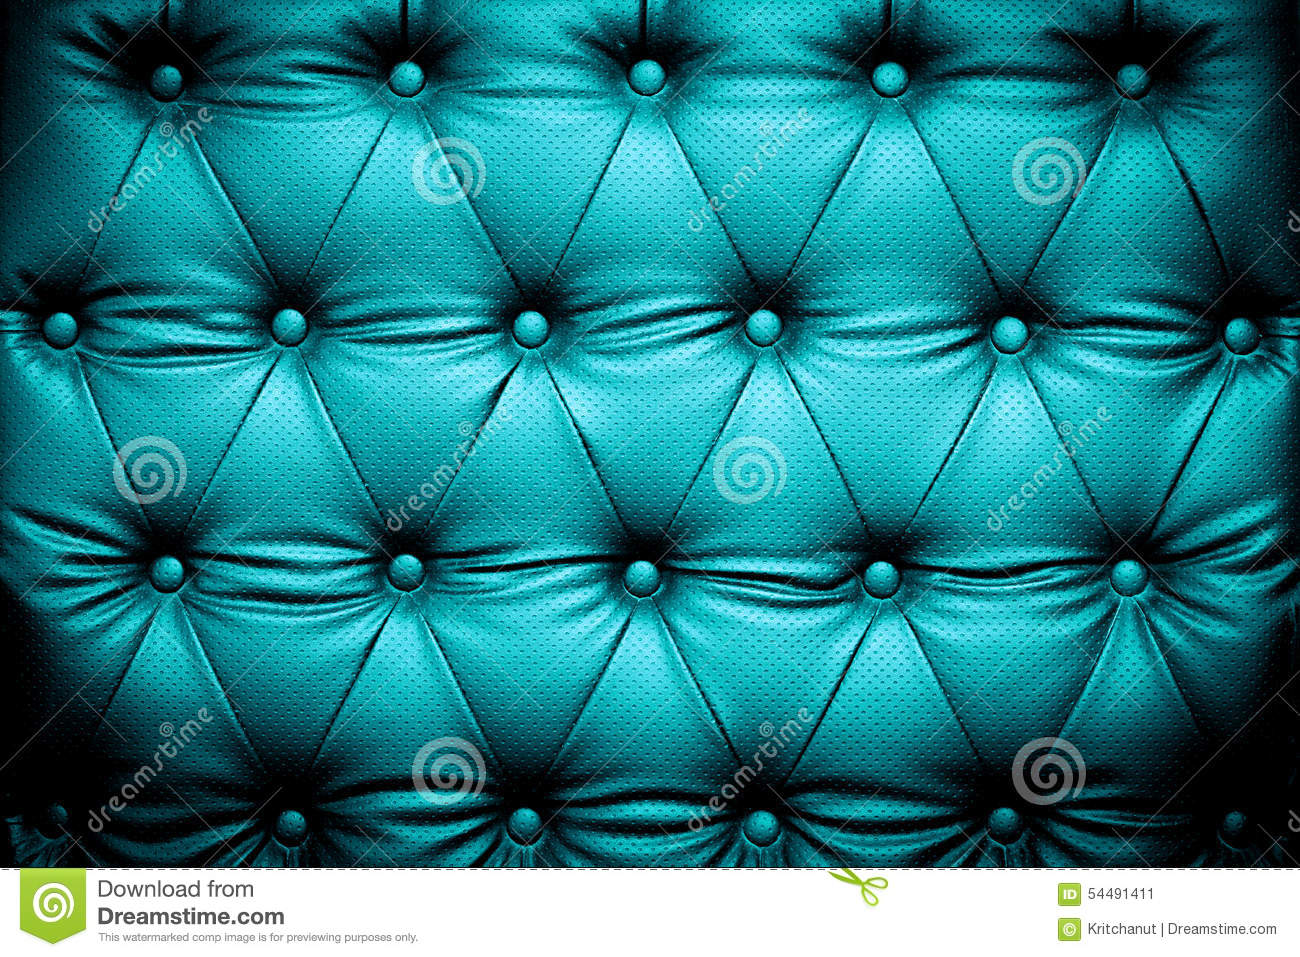 Dark Blue Turquoise Leather Texture With Buttoned Pattern Stock Photo  Image 54491411